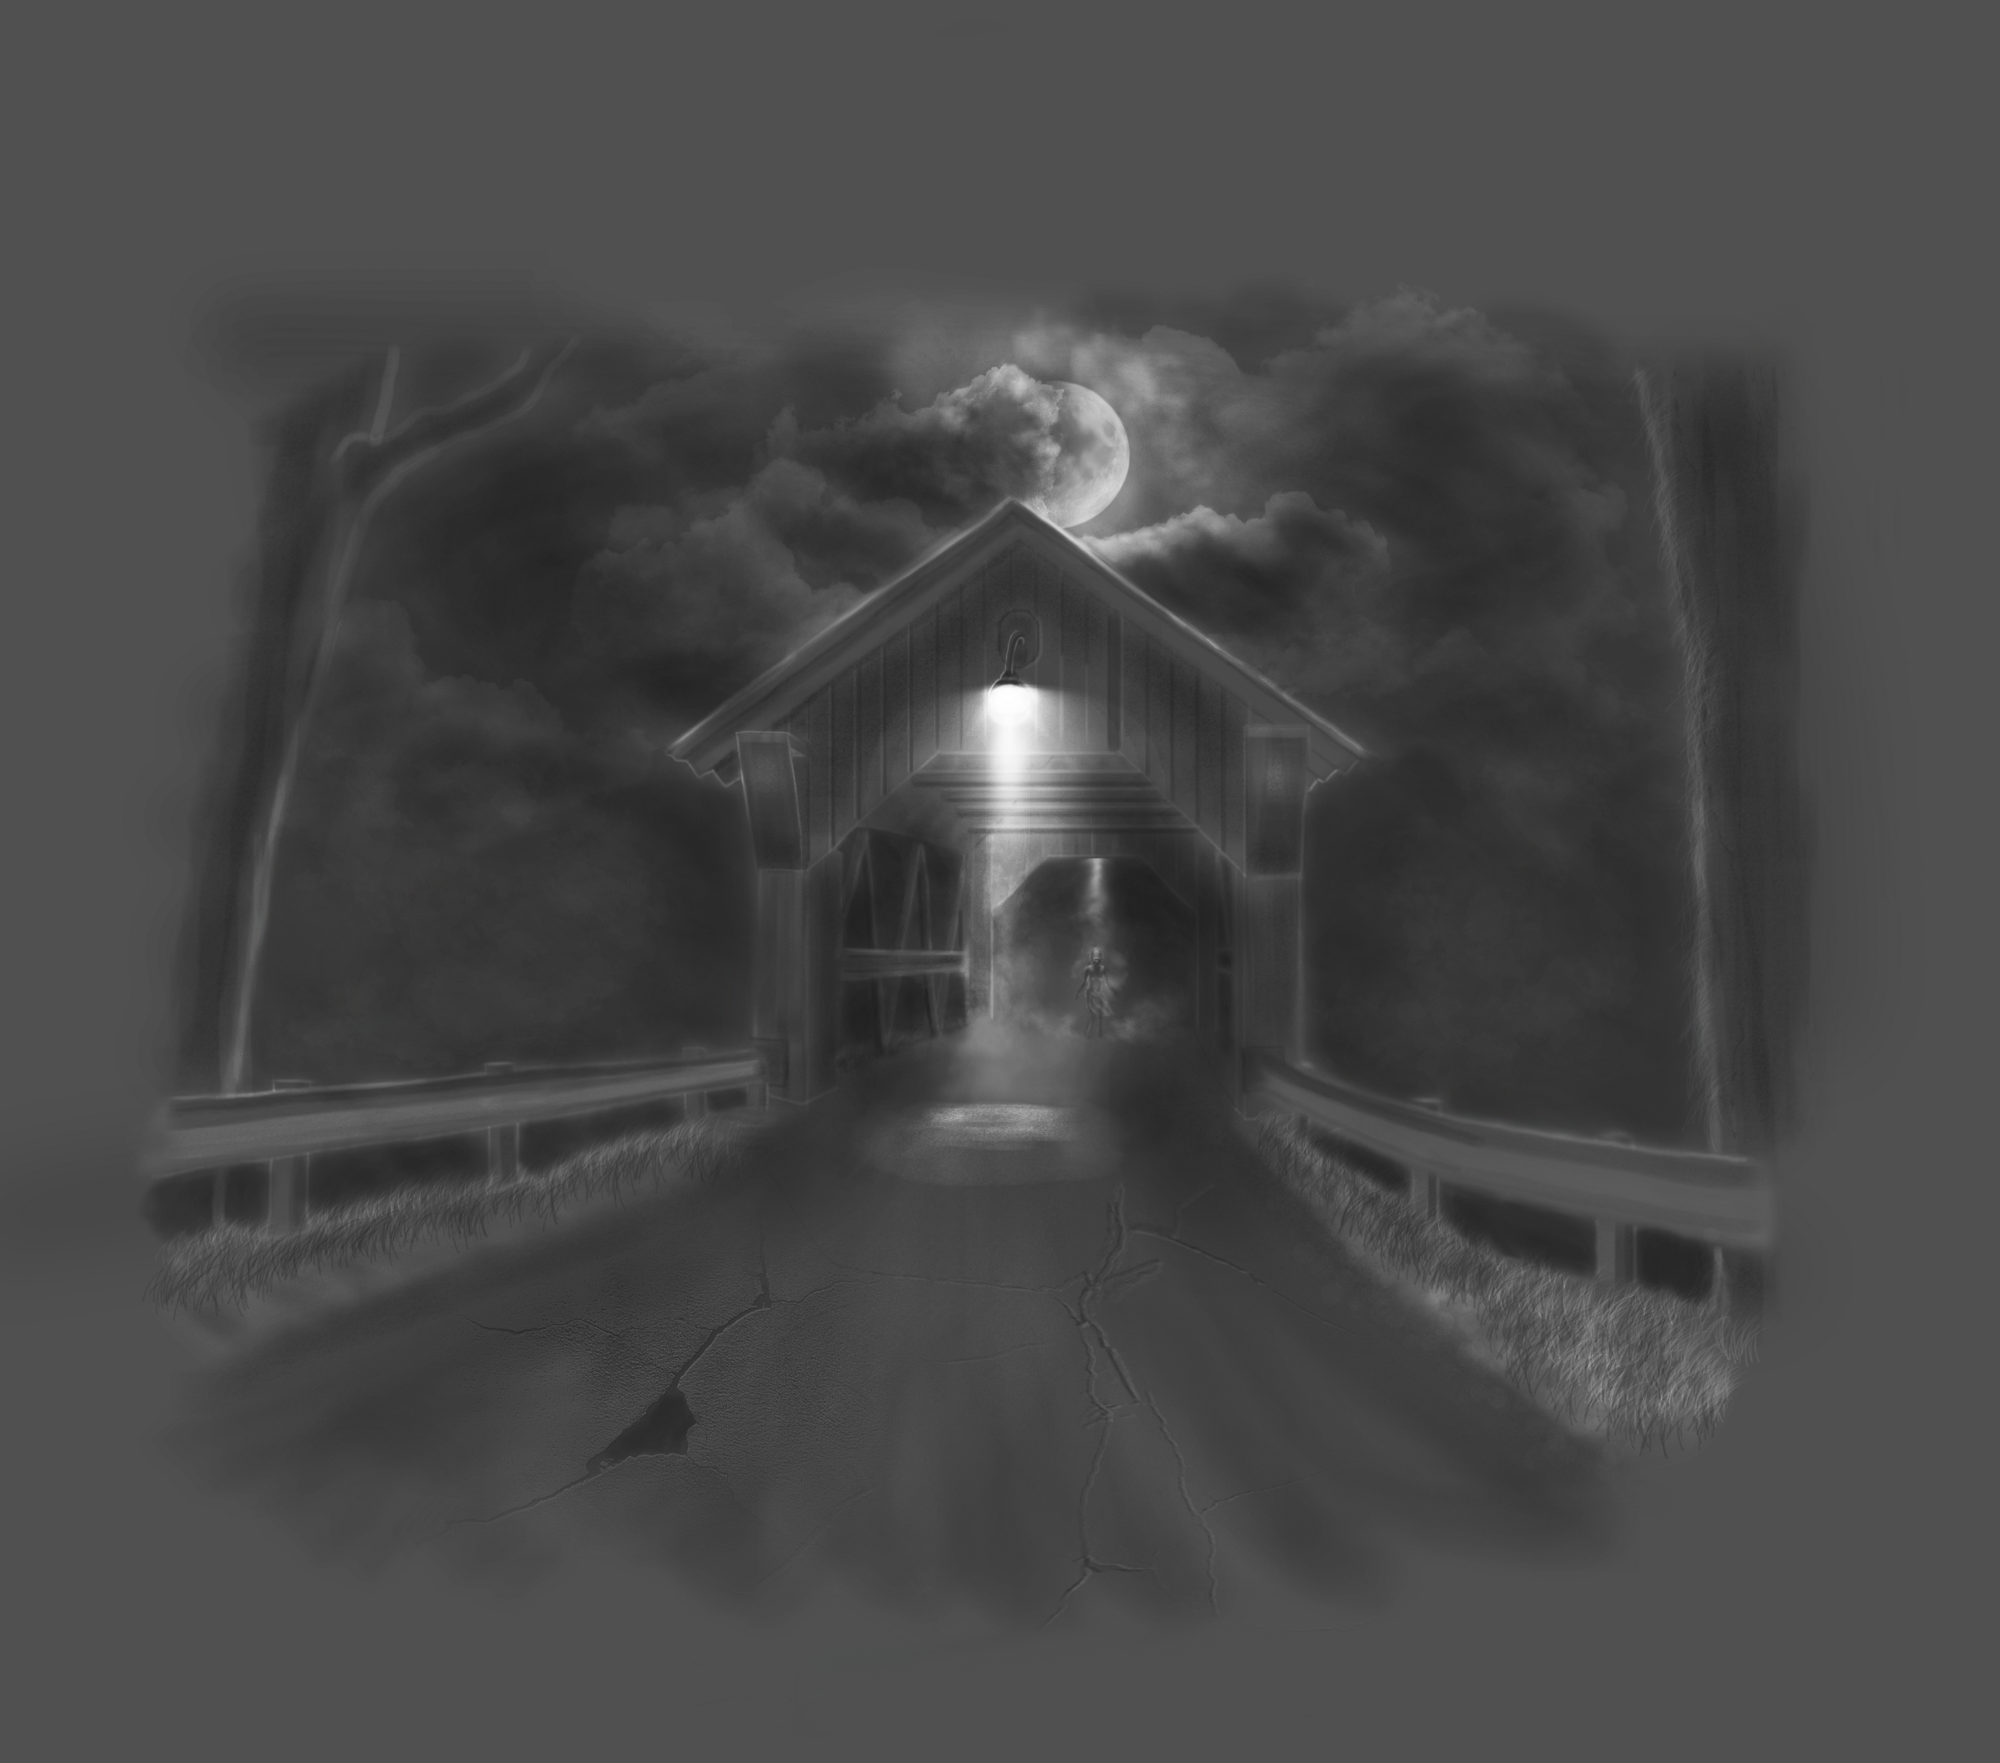 A black and white drawing of a cracked road leading to a bridge. One solitary light shines on the bridge, revealing a figure standing in the distance.